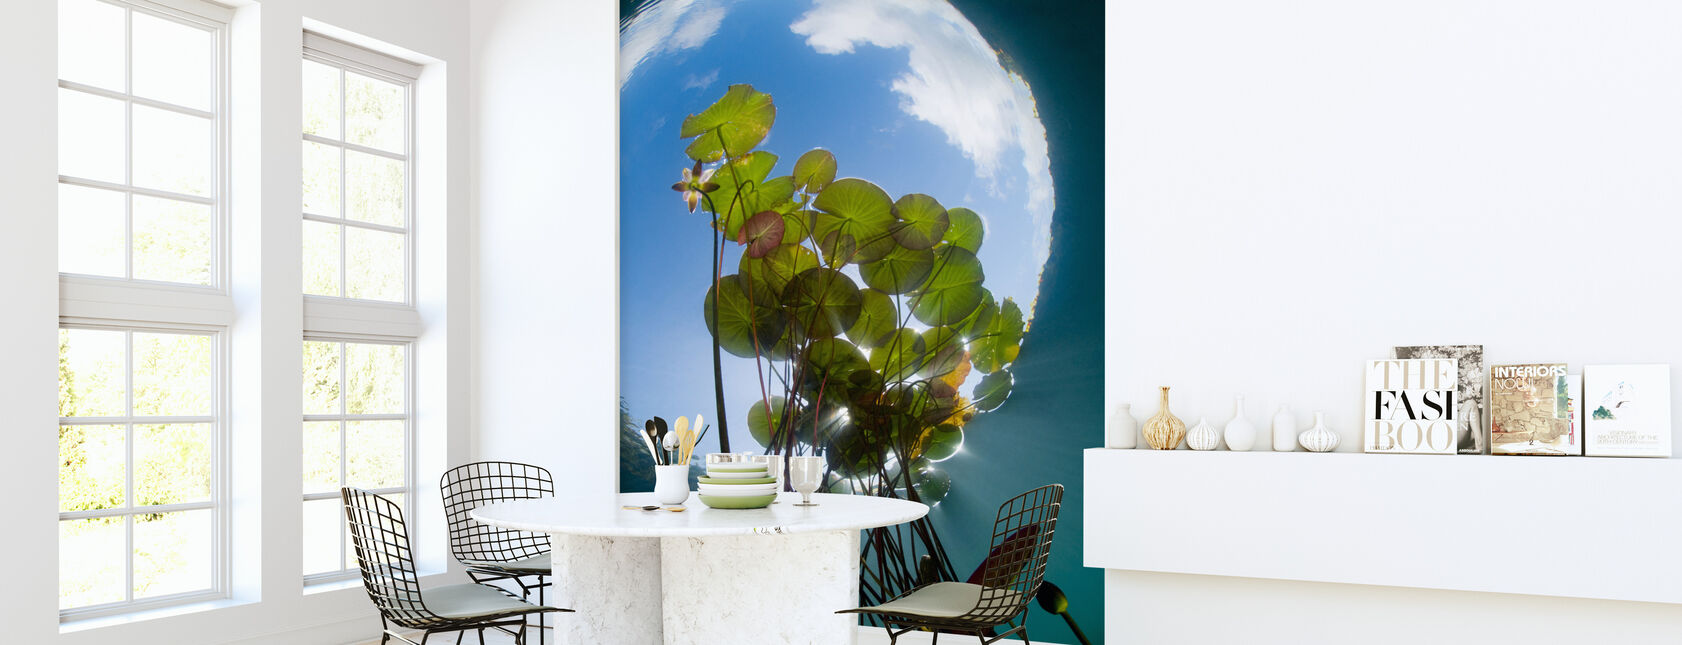 Floating Water Lilies - Wallpaper - Kitchen